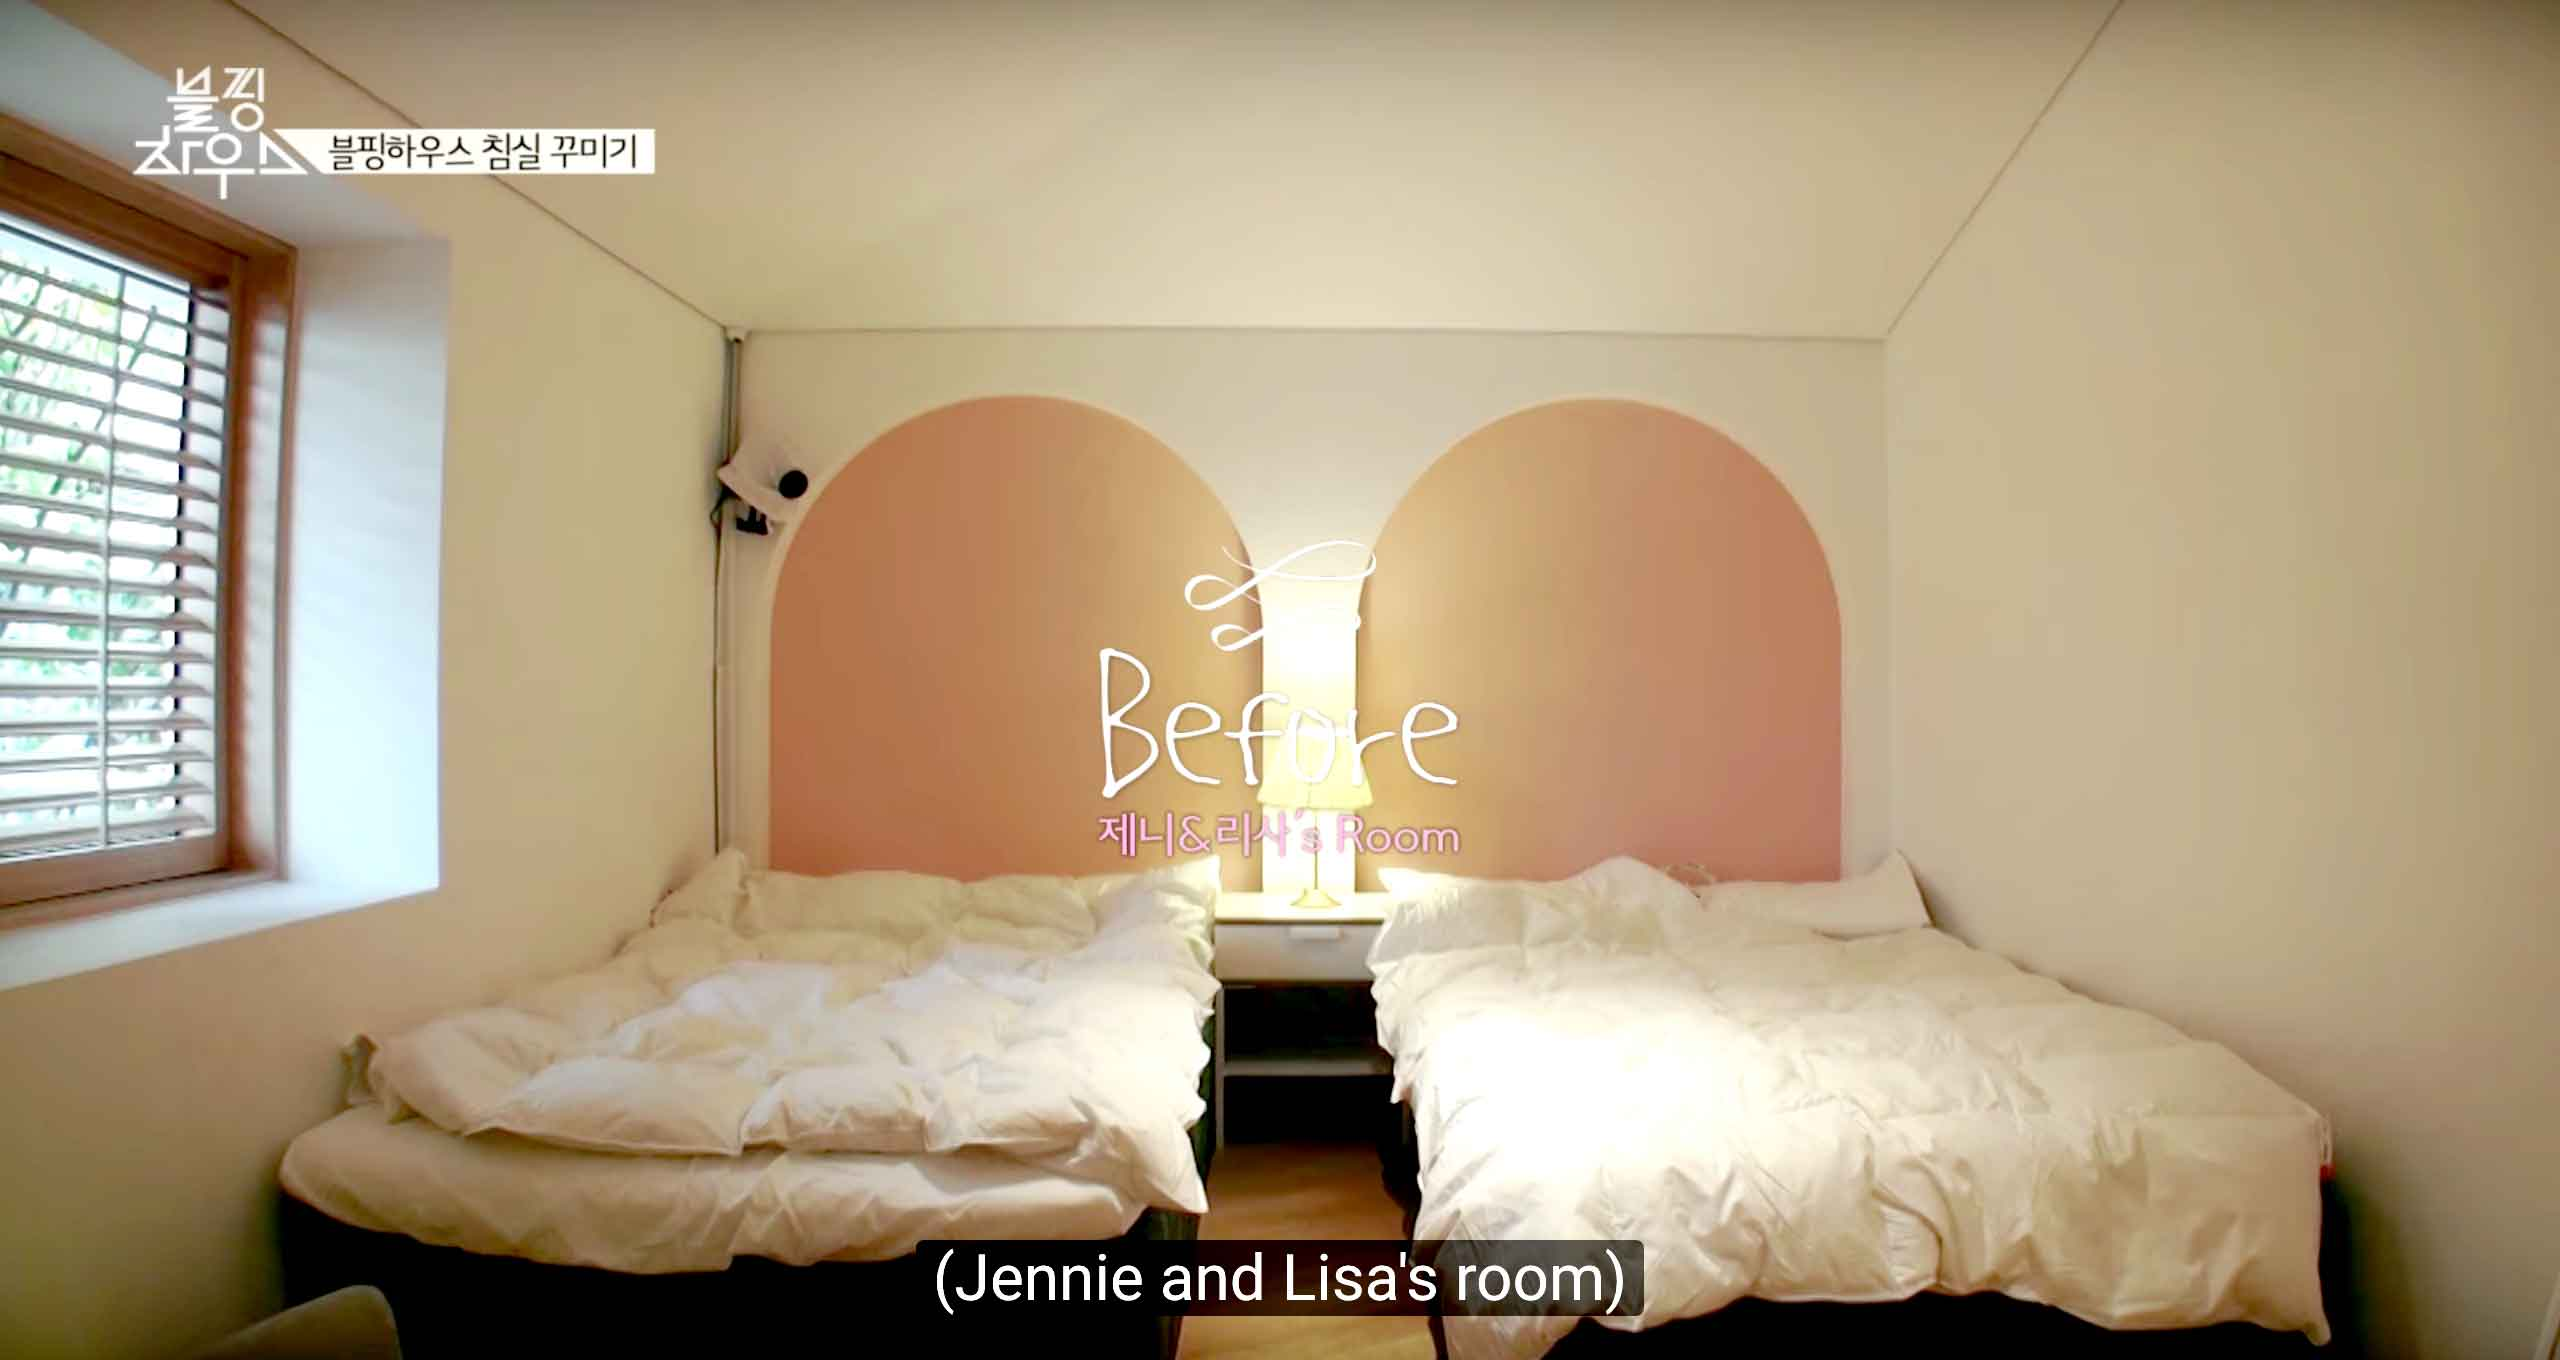 Awesome Blackpink House Lisa Room wallpapers to download for free greenvirals